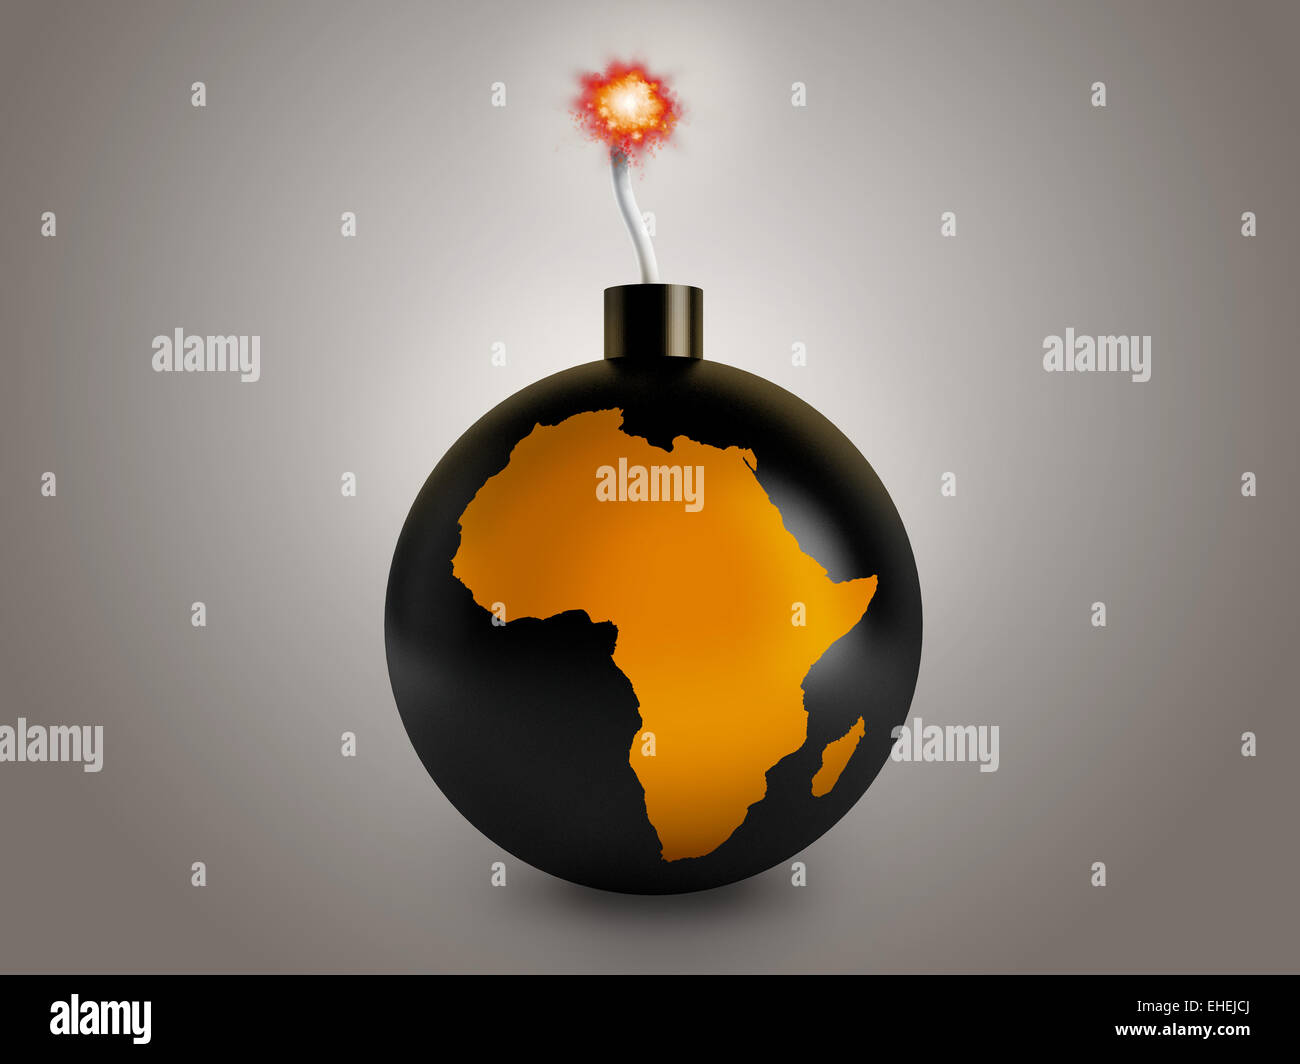 African's crisis - Stock Image